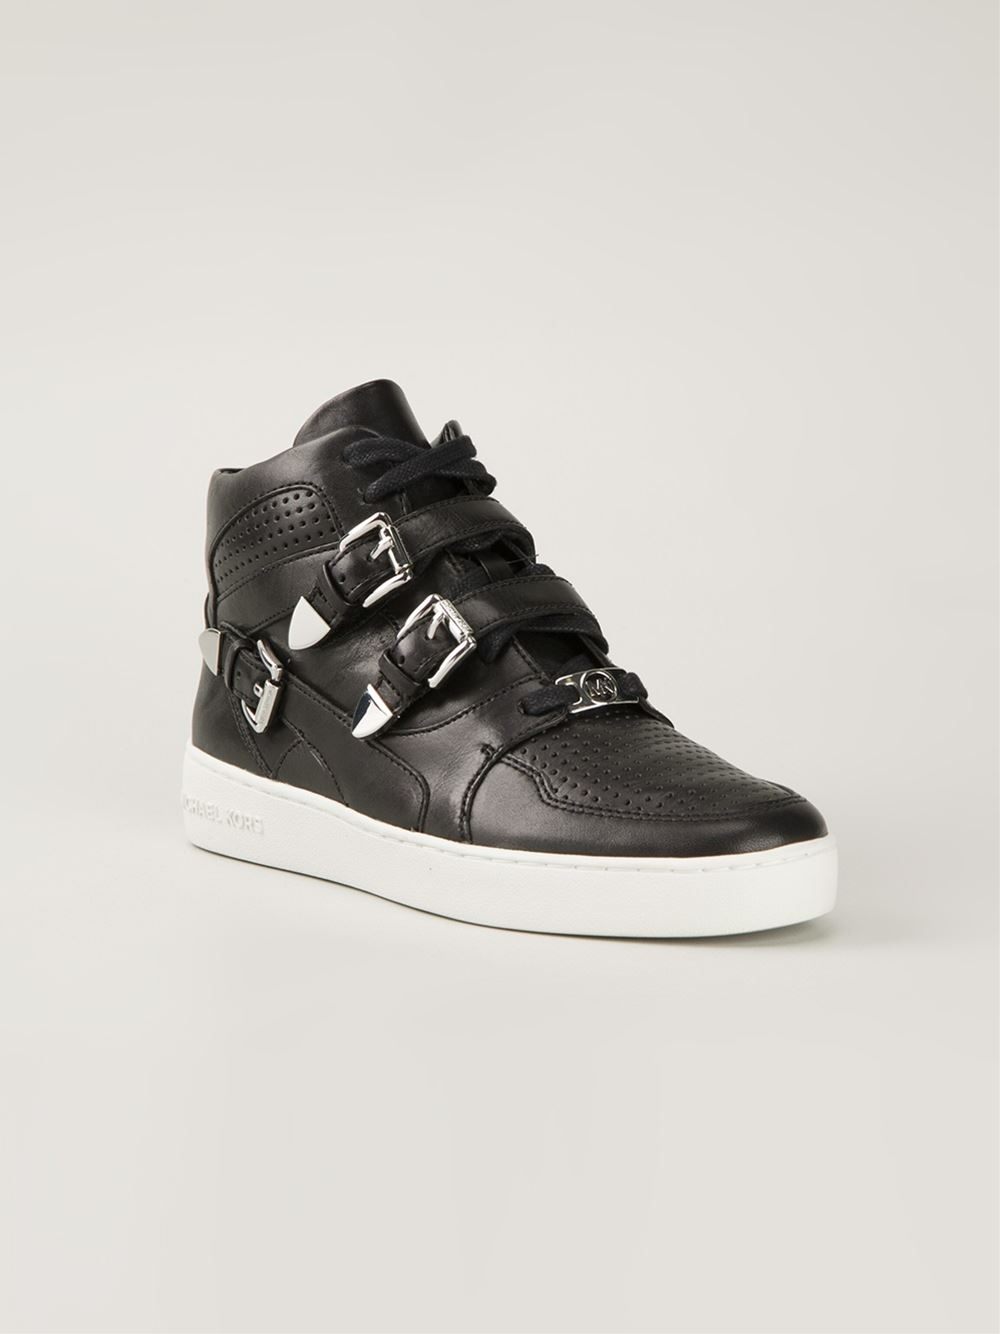 Michael Kors High Top Sneakers Black 28 Images Michael